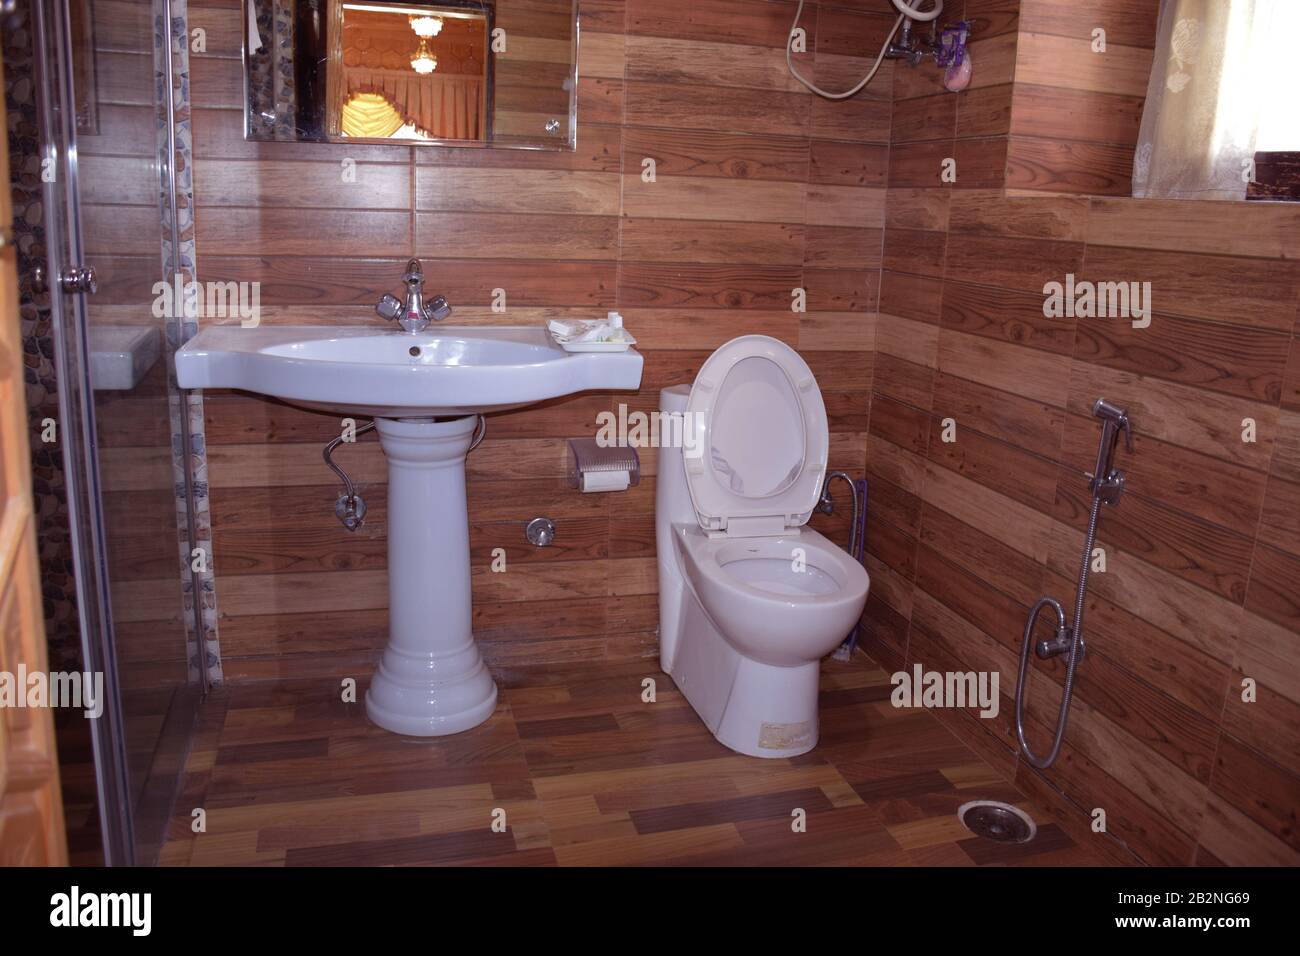 A Hotel Toilet Washroom Lavatory Or Loo In India Stock Photo Alamy